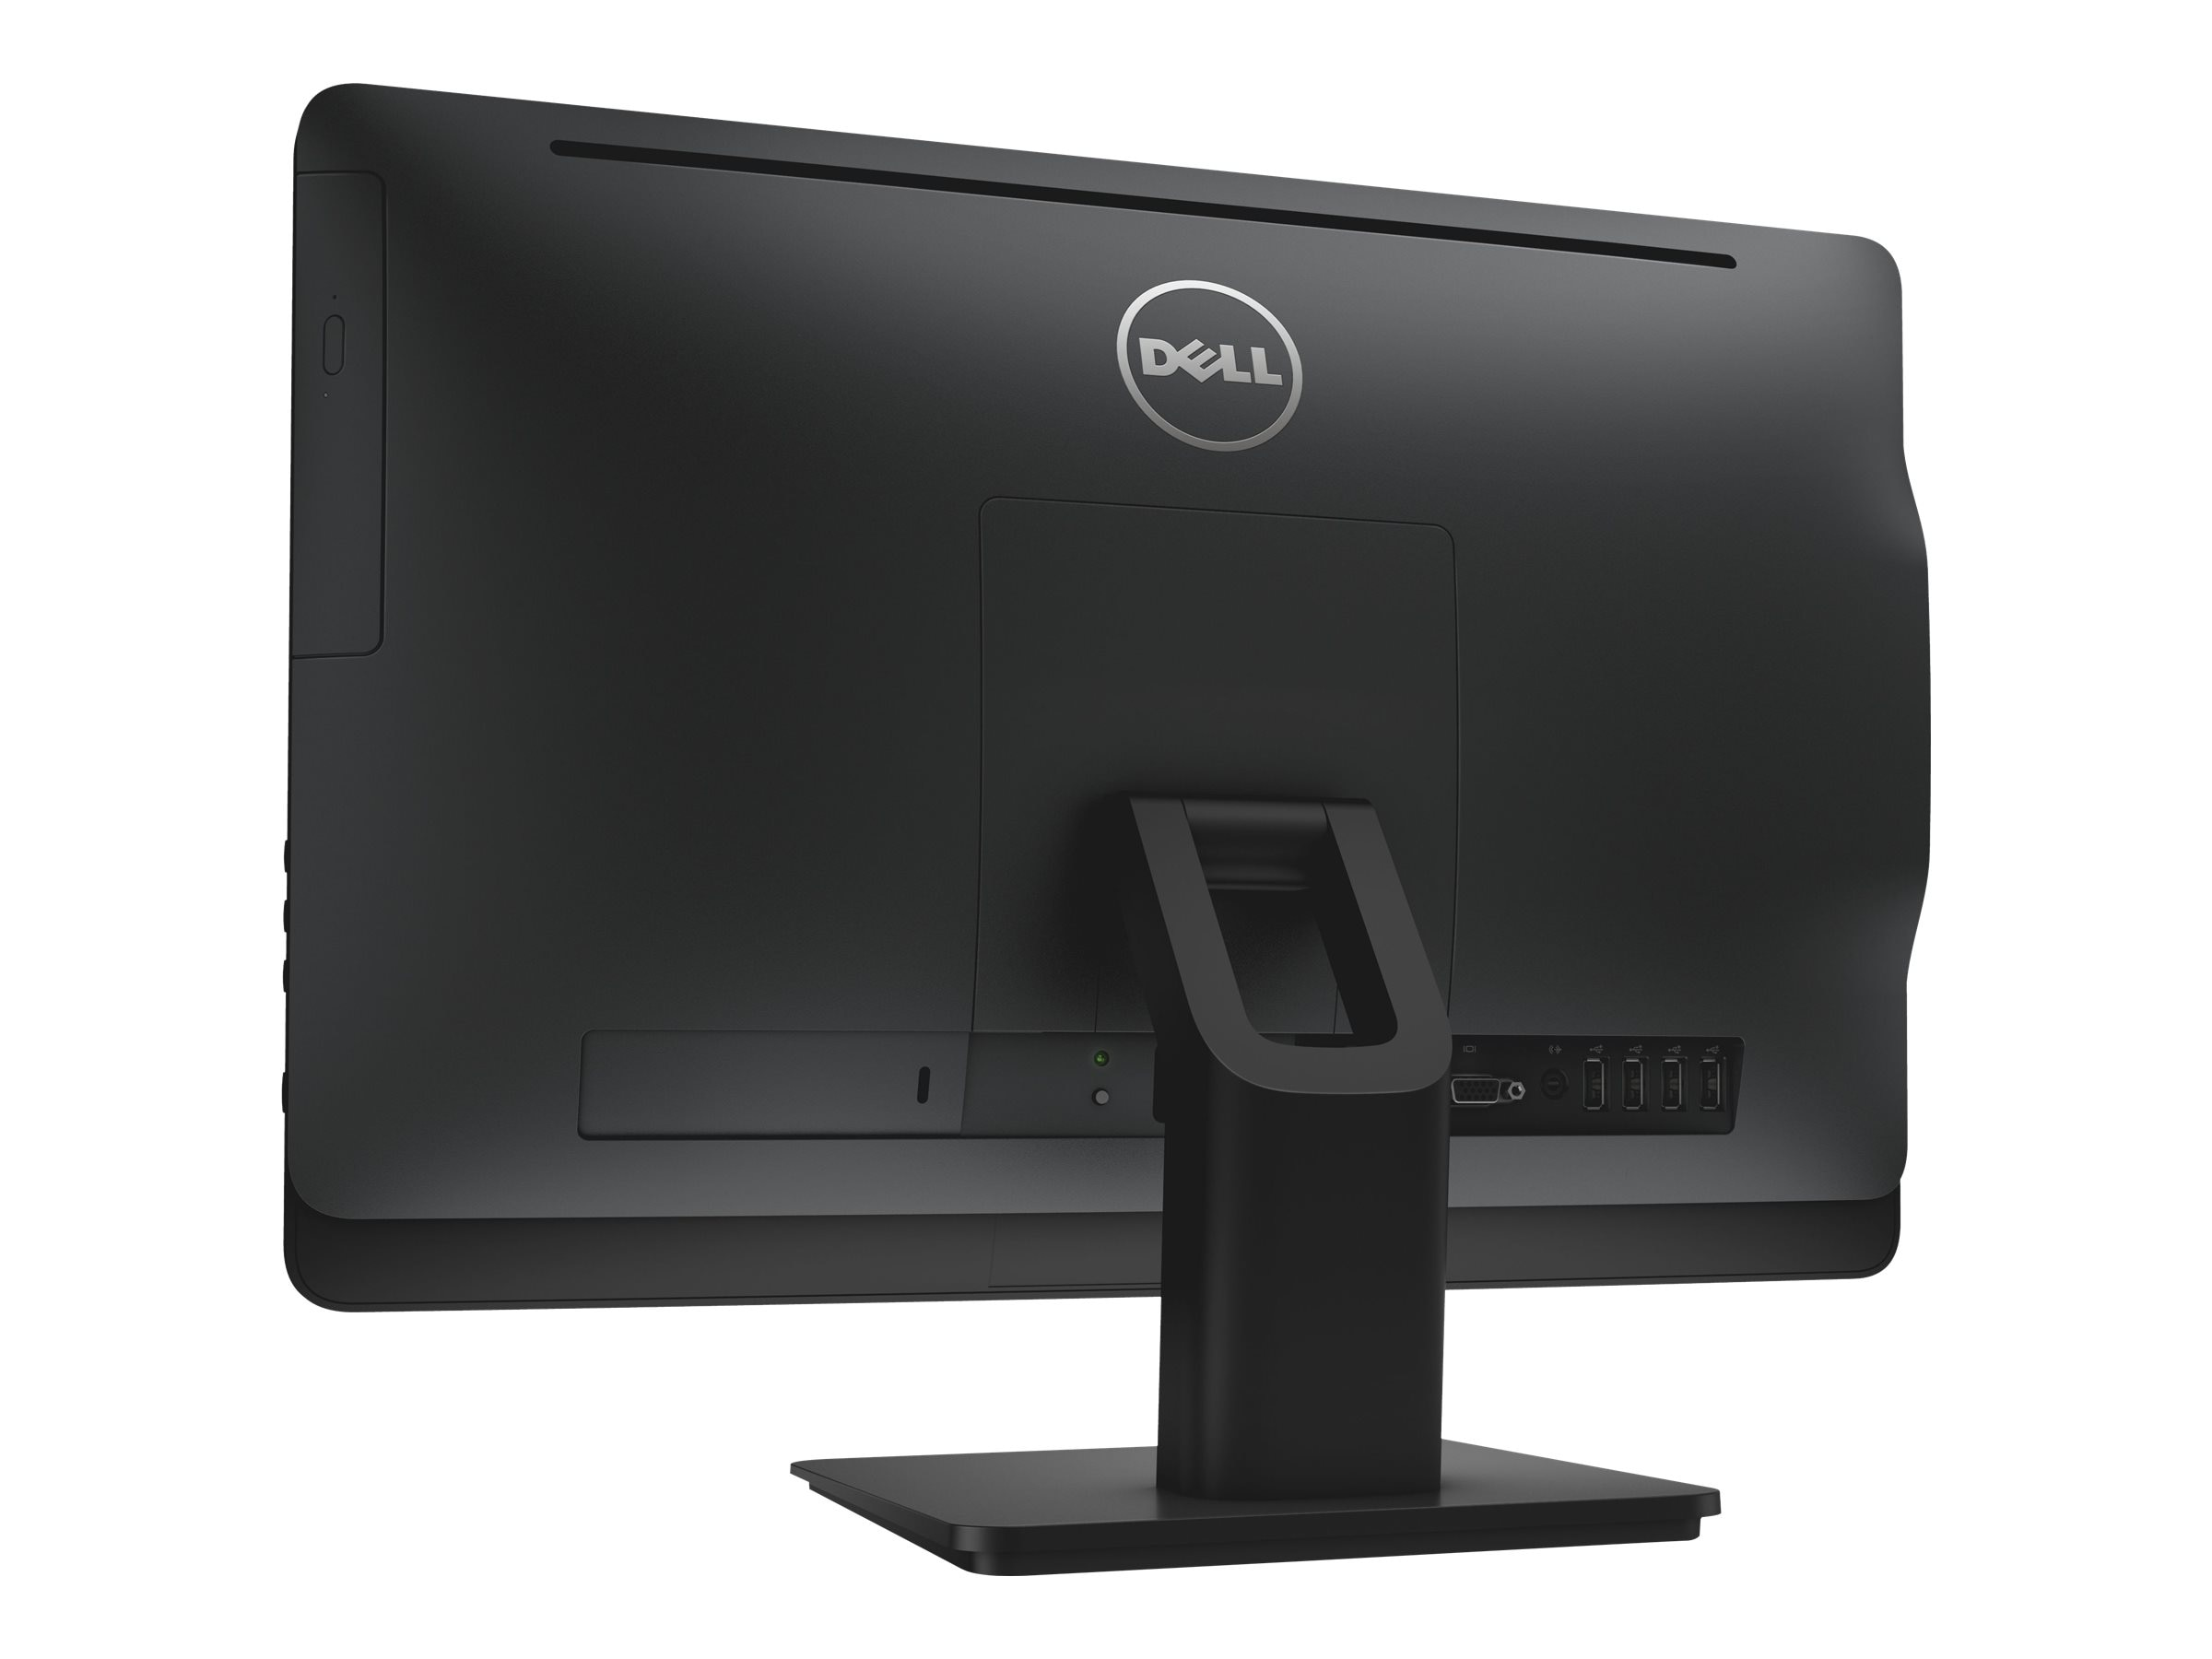 Dell OptiPlex 3030 AIO Core i5-4590S 3.0GHz 4GB 500GB DVD+RW GbE agn 19.5 HD+ W10P64, GMGCG